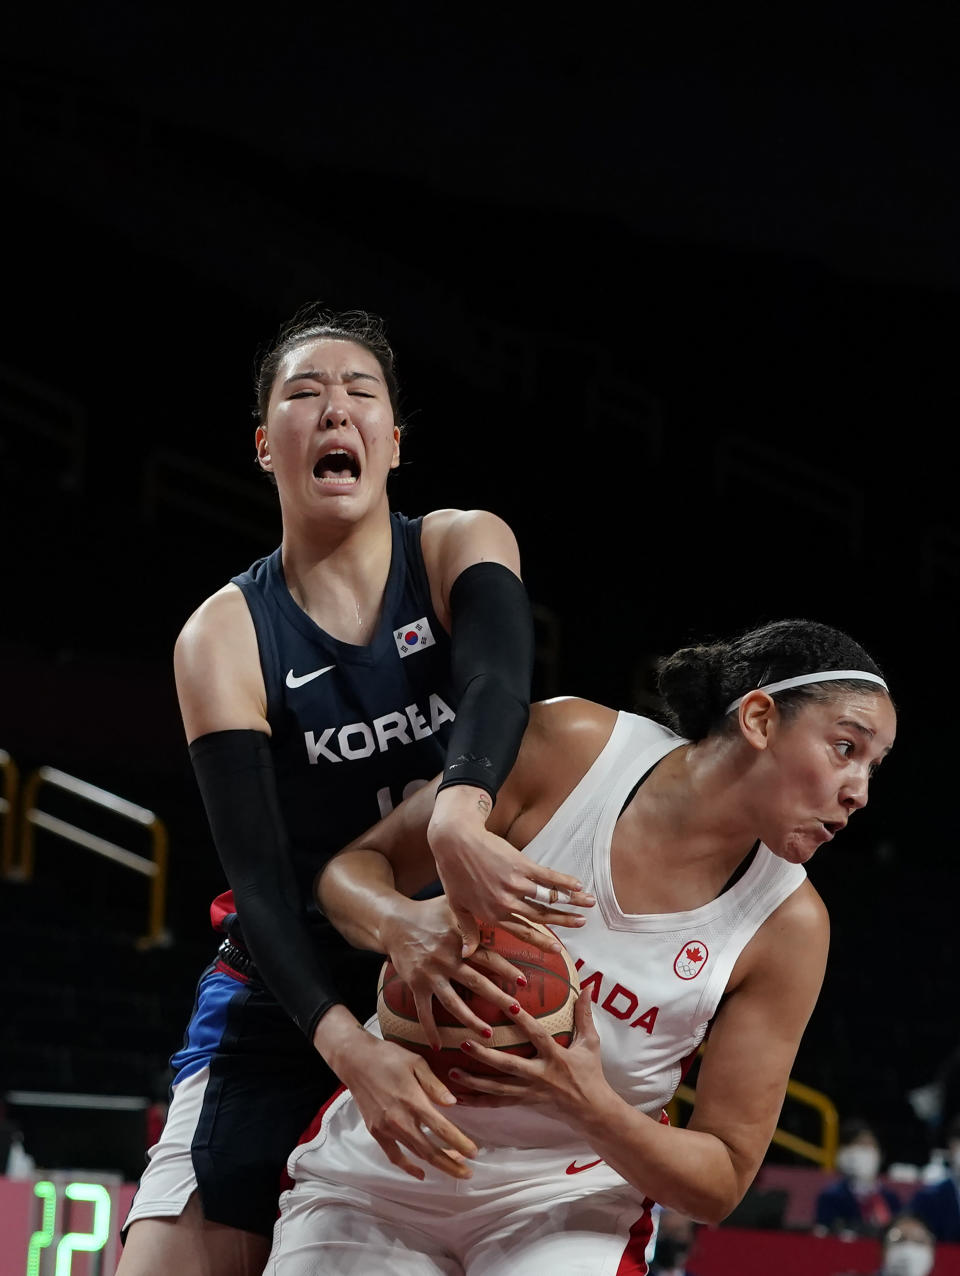 Canada's Natalie Achonwa (11), right, steals the ball from South Korea's Ji Su Park (19) during women's basketball preliminary round game at the 2020 Summer Olympics, Thursday, July 29, 2021, in Saitama, Japan. (AP Photo/Charlie Neibergall)